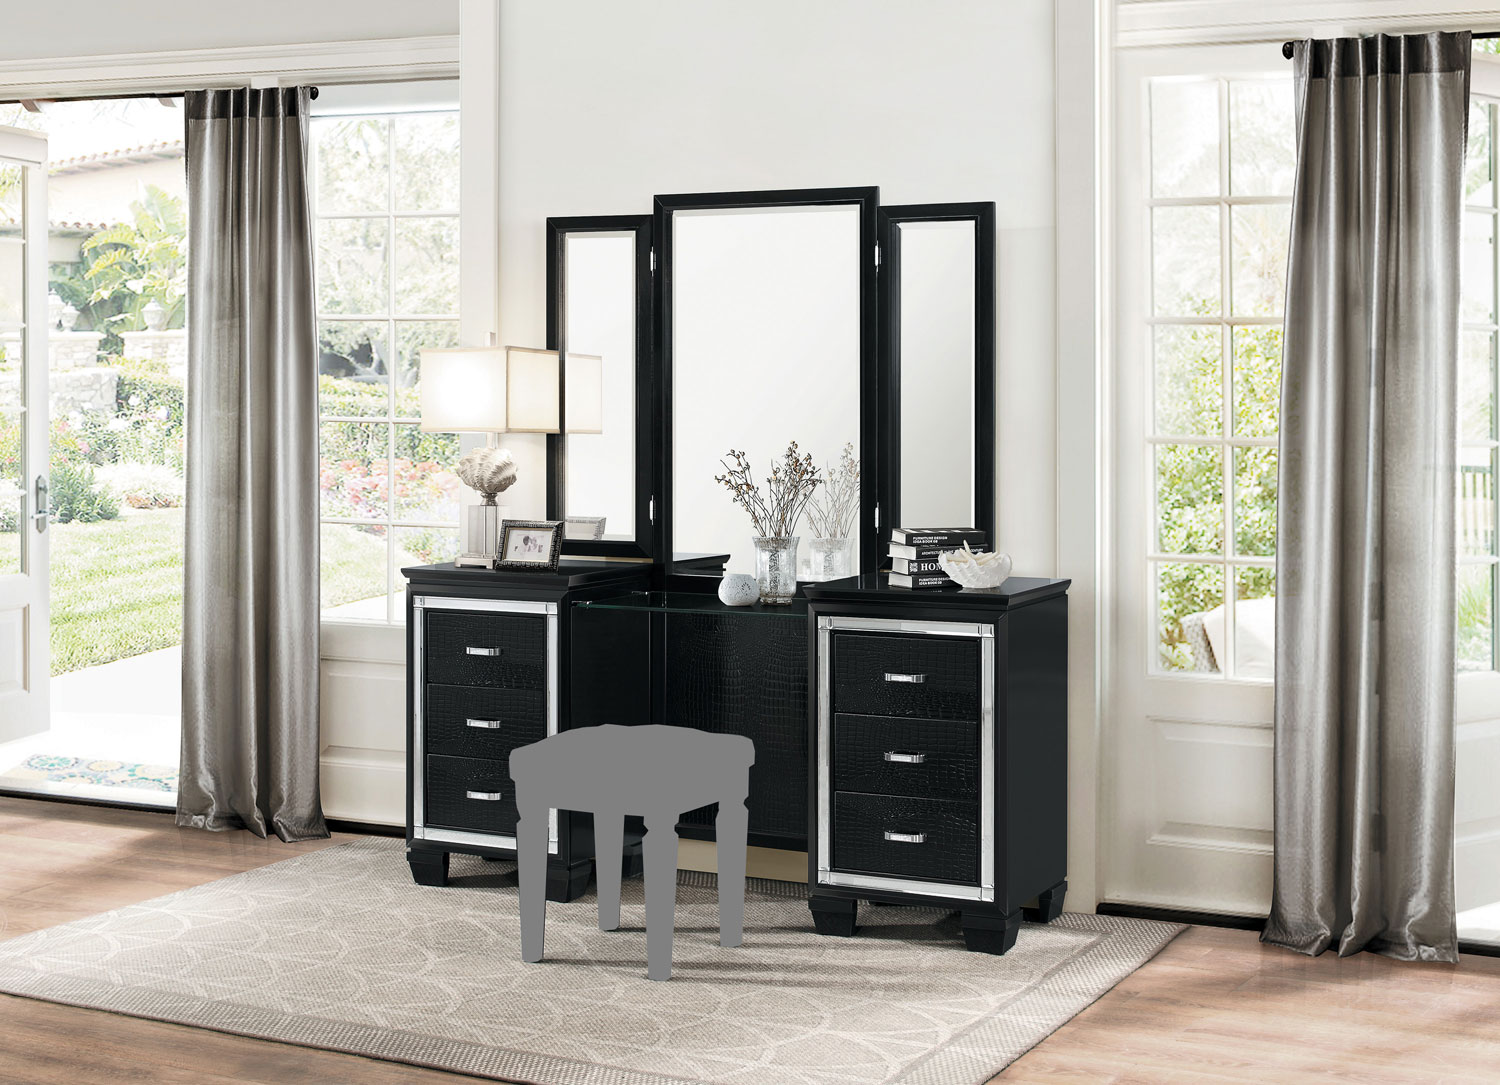 Homelegance Allura Vanity with Mirror - Black